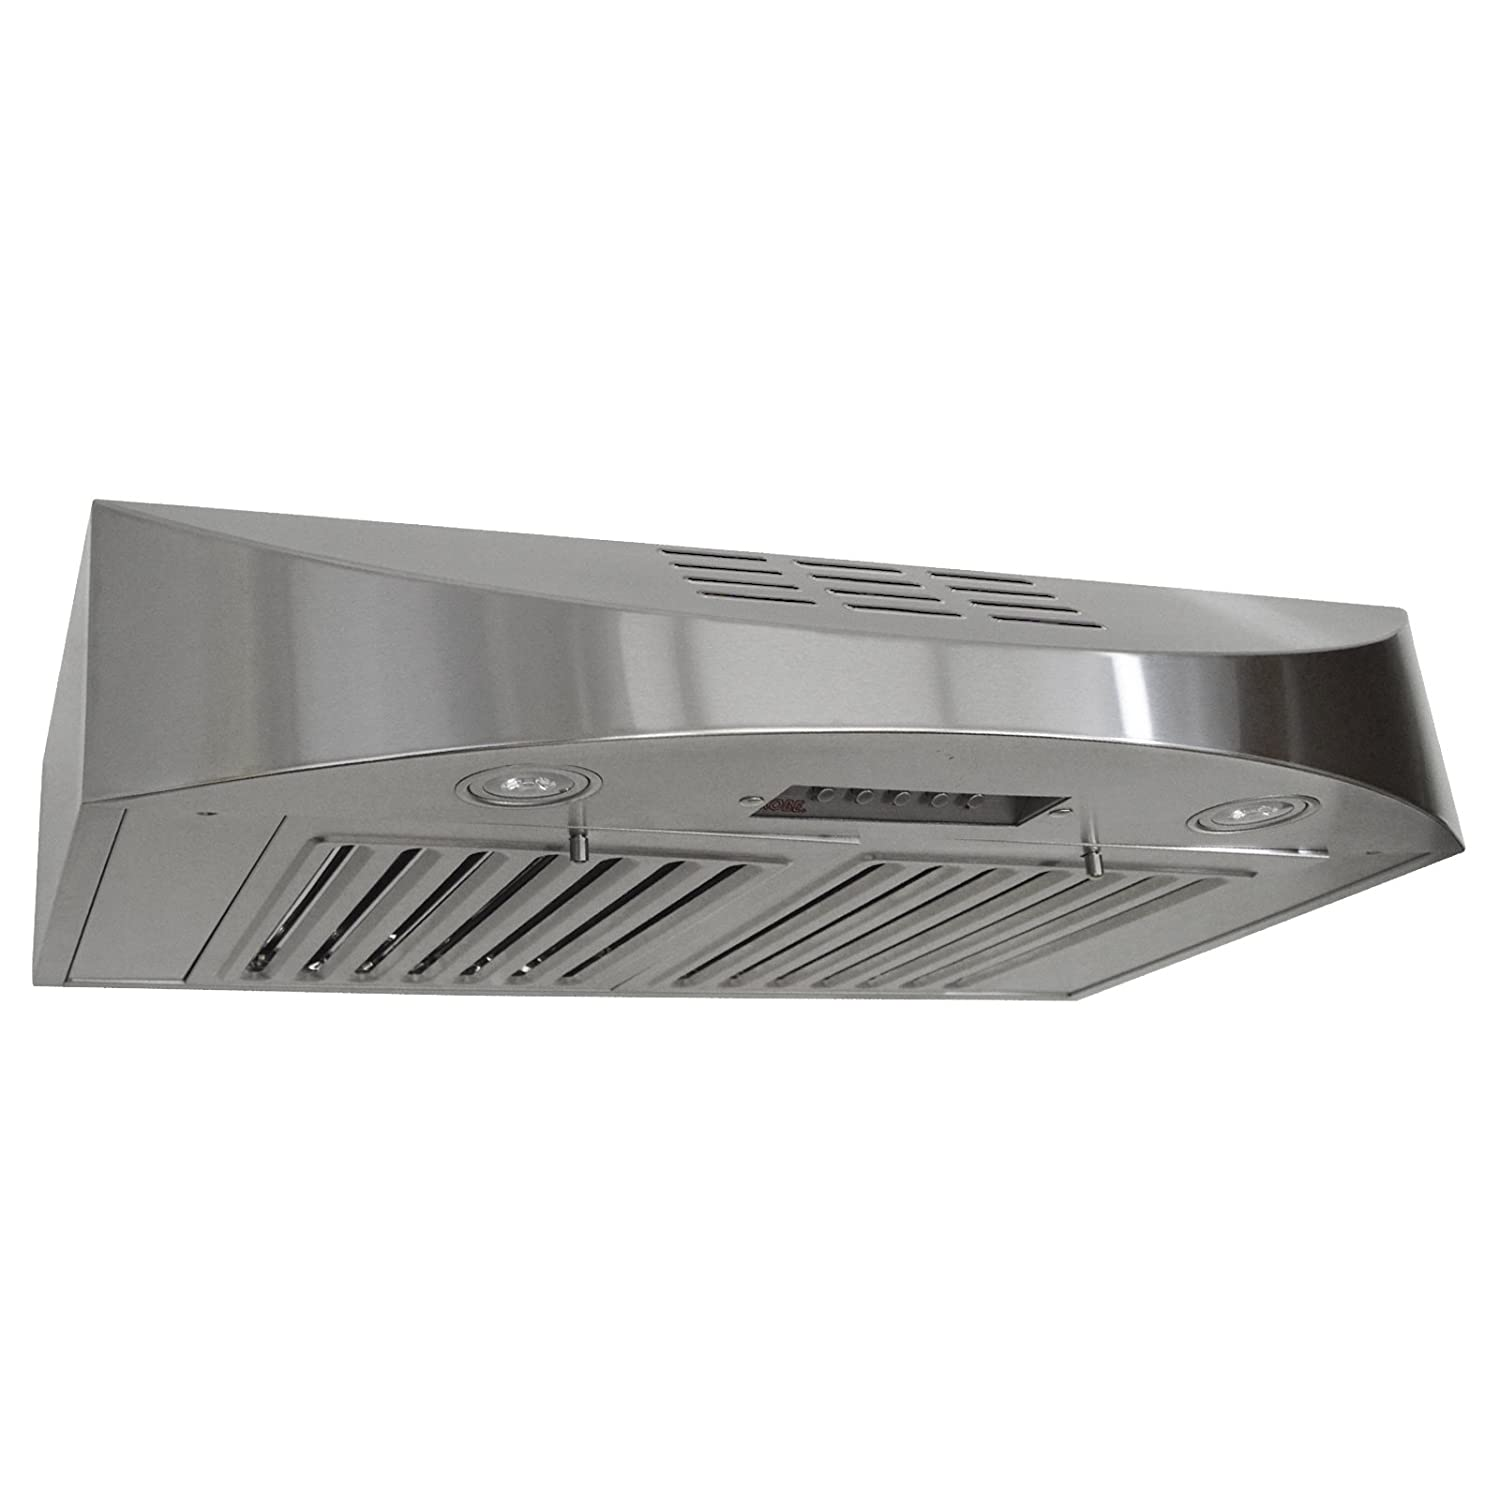 KOBE CHX3836SQBD-3 Brillia 36-inch Ductless Under Cabinet Range Hood, 3-Speed, 400 CFM, LED Lights, Baffle Filters